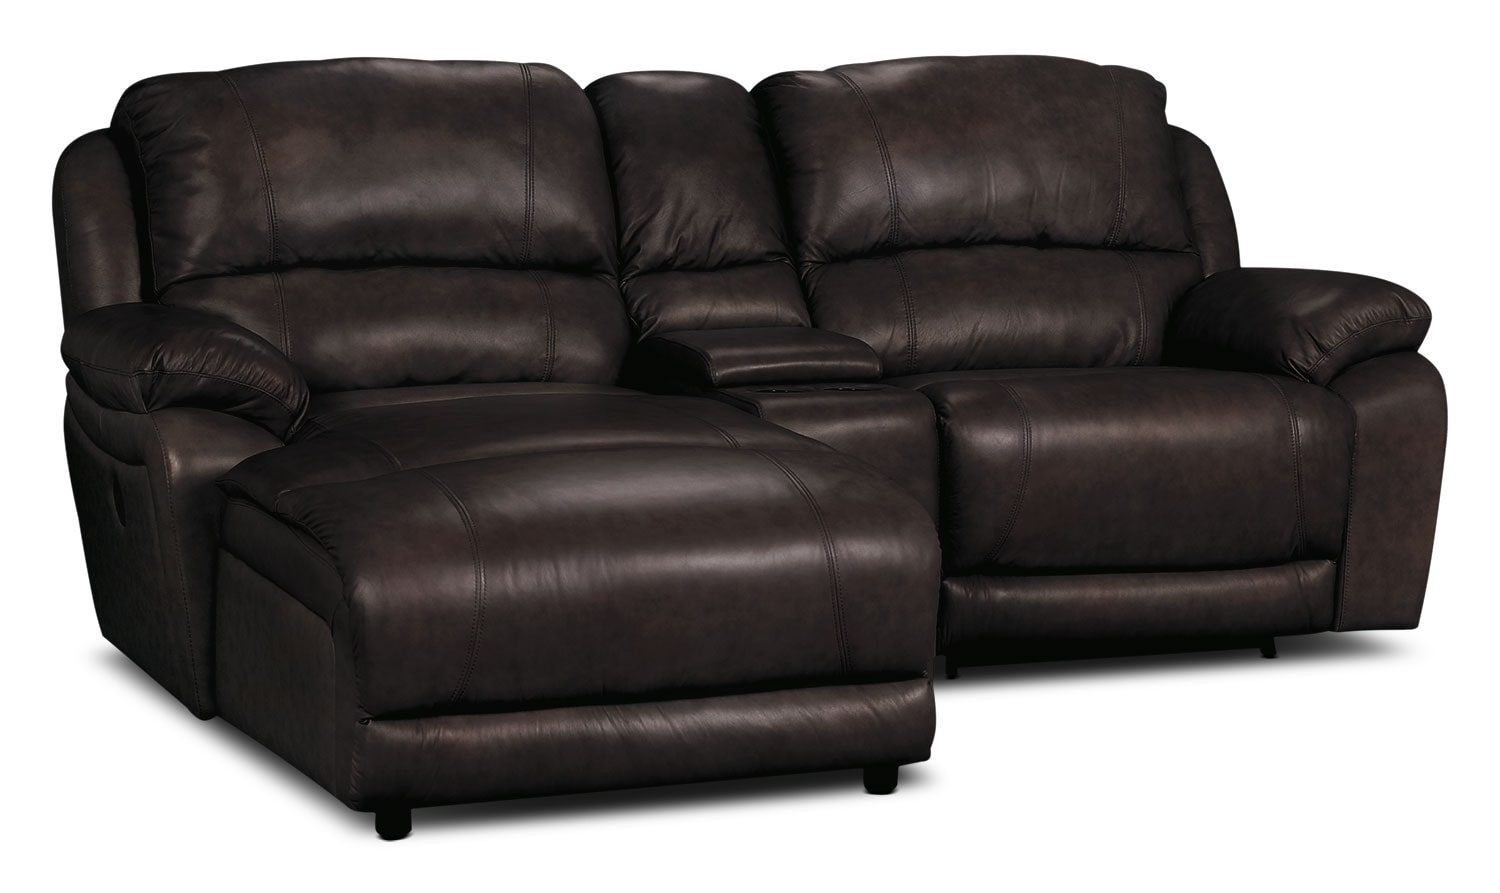 Leather sectional sofa with chaise and recliner 28 for Chaise and recliner